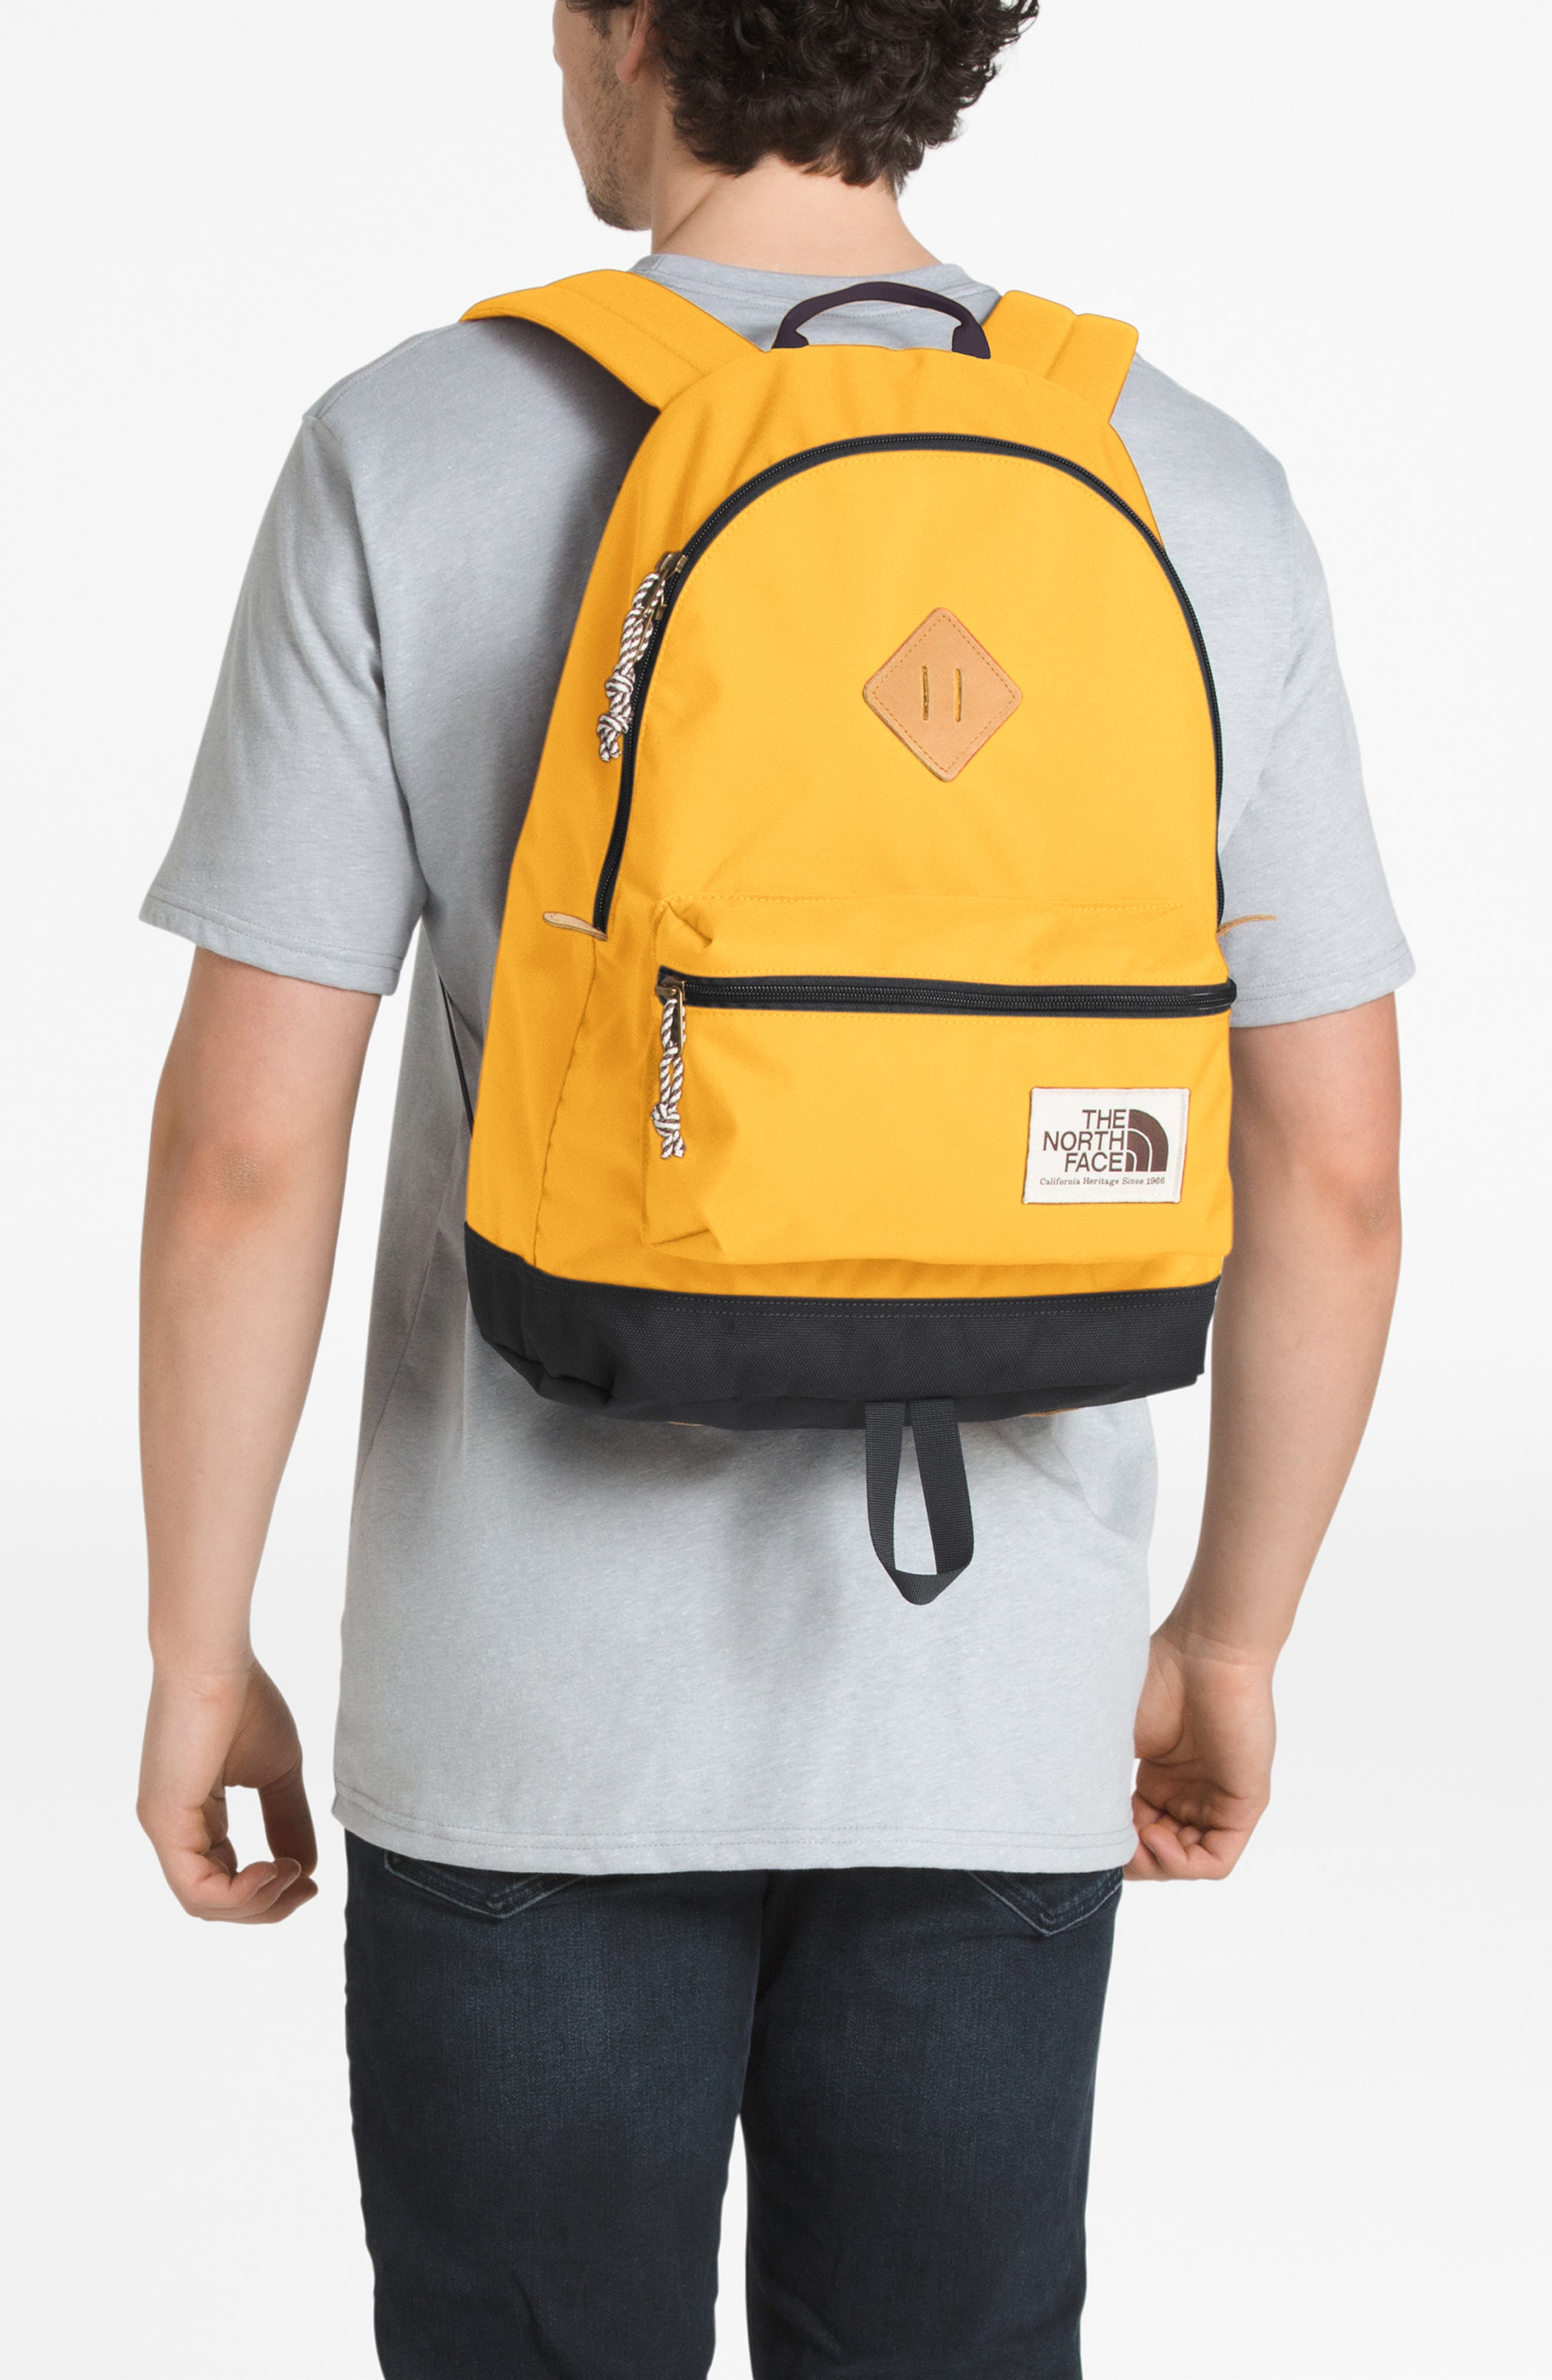 The North Face Berkeley 25-Liter Backpack - Yellow